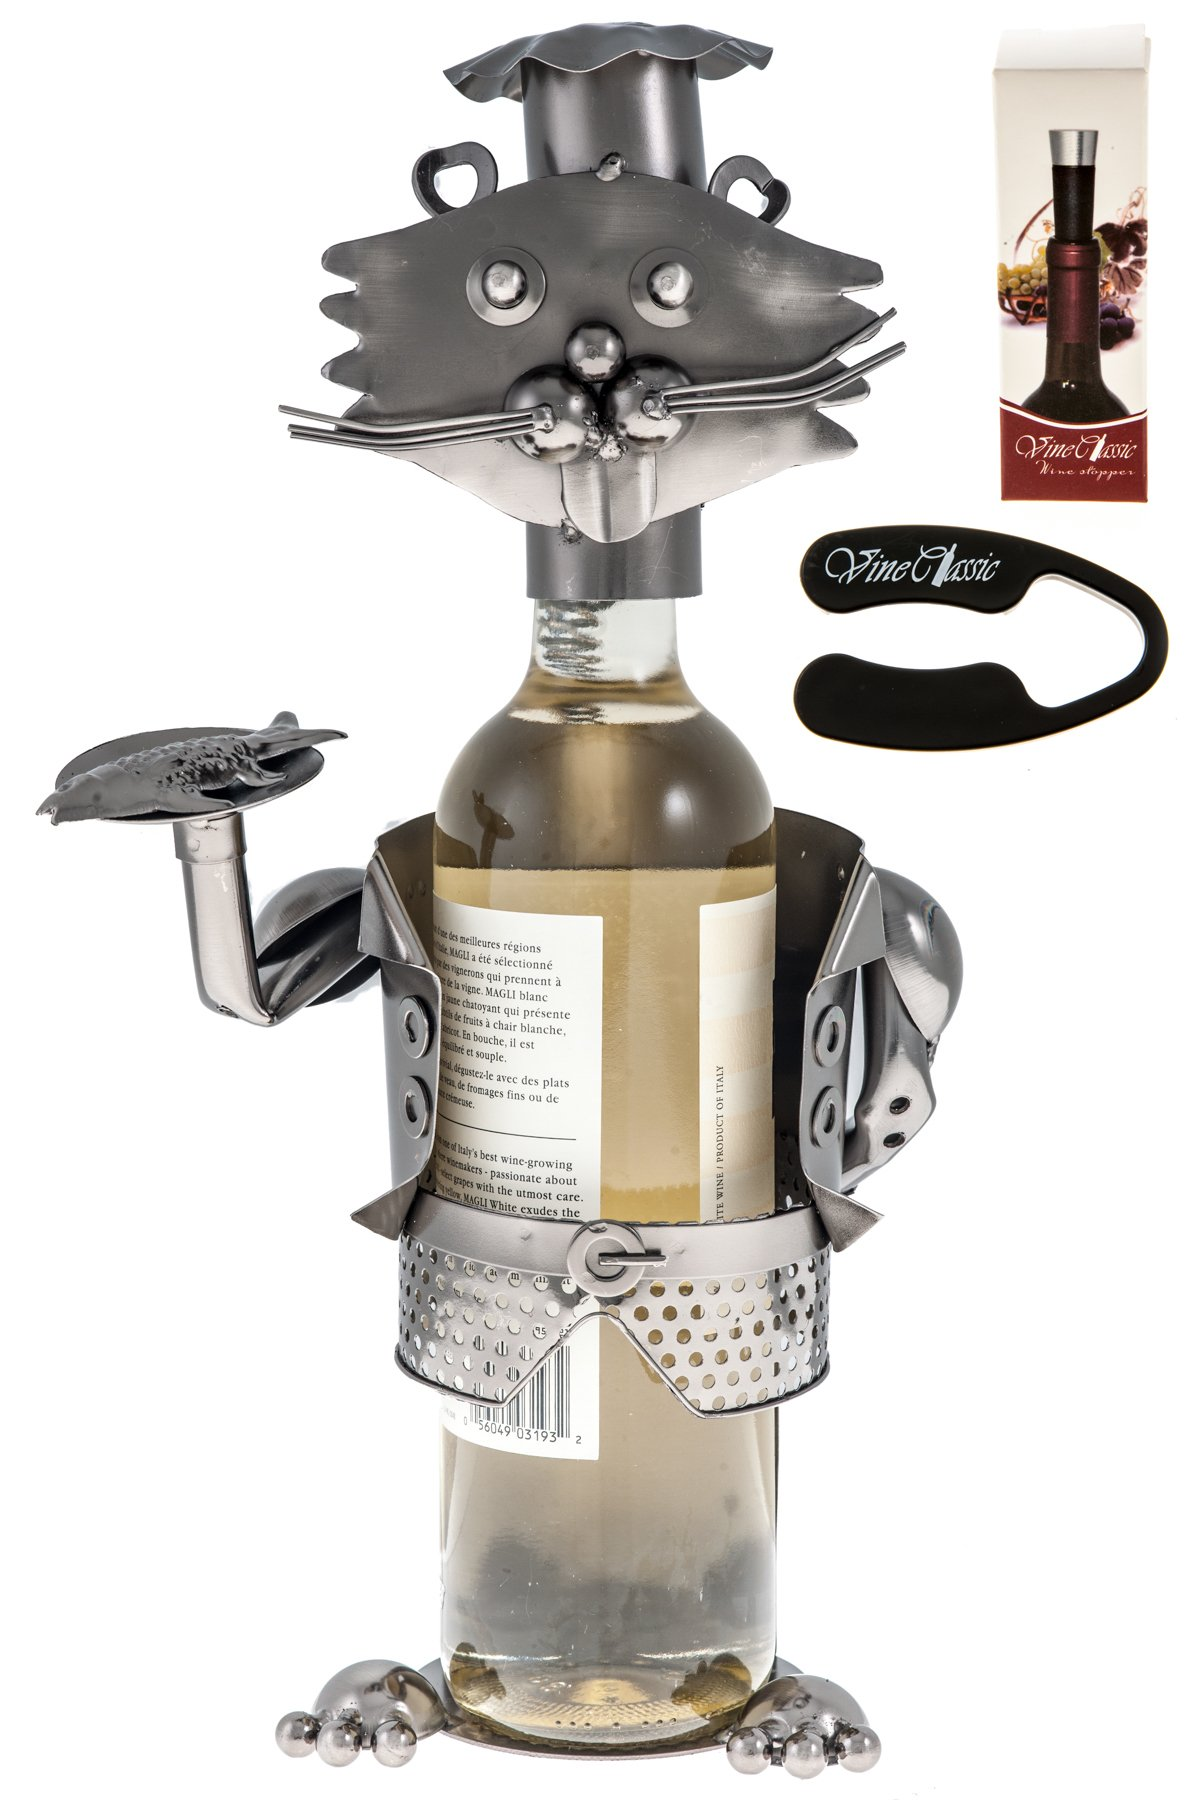 Fabulous Cat Waiter Figurine Wearing a Chefs Hat and Holding a Tray of Fish, Genuine Hand Made Wine Bottle Holder Plus a Wine Foil Cutter and a Wine Vacuum Stopper